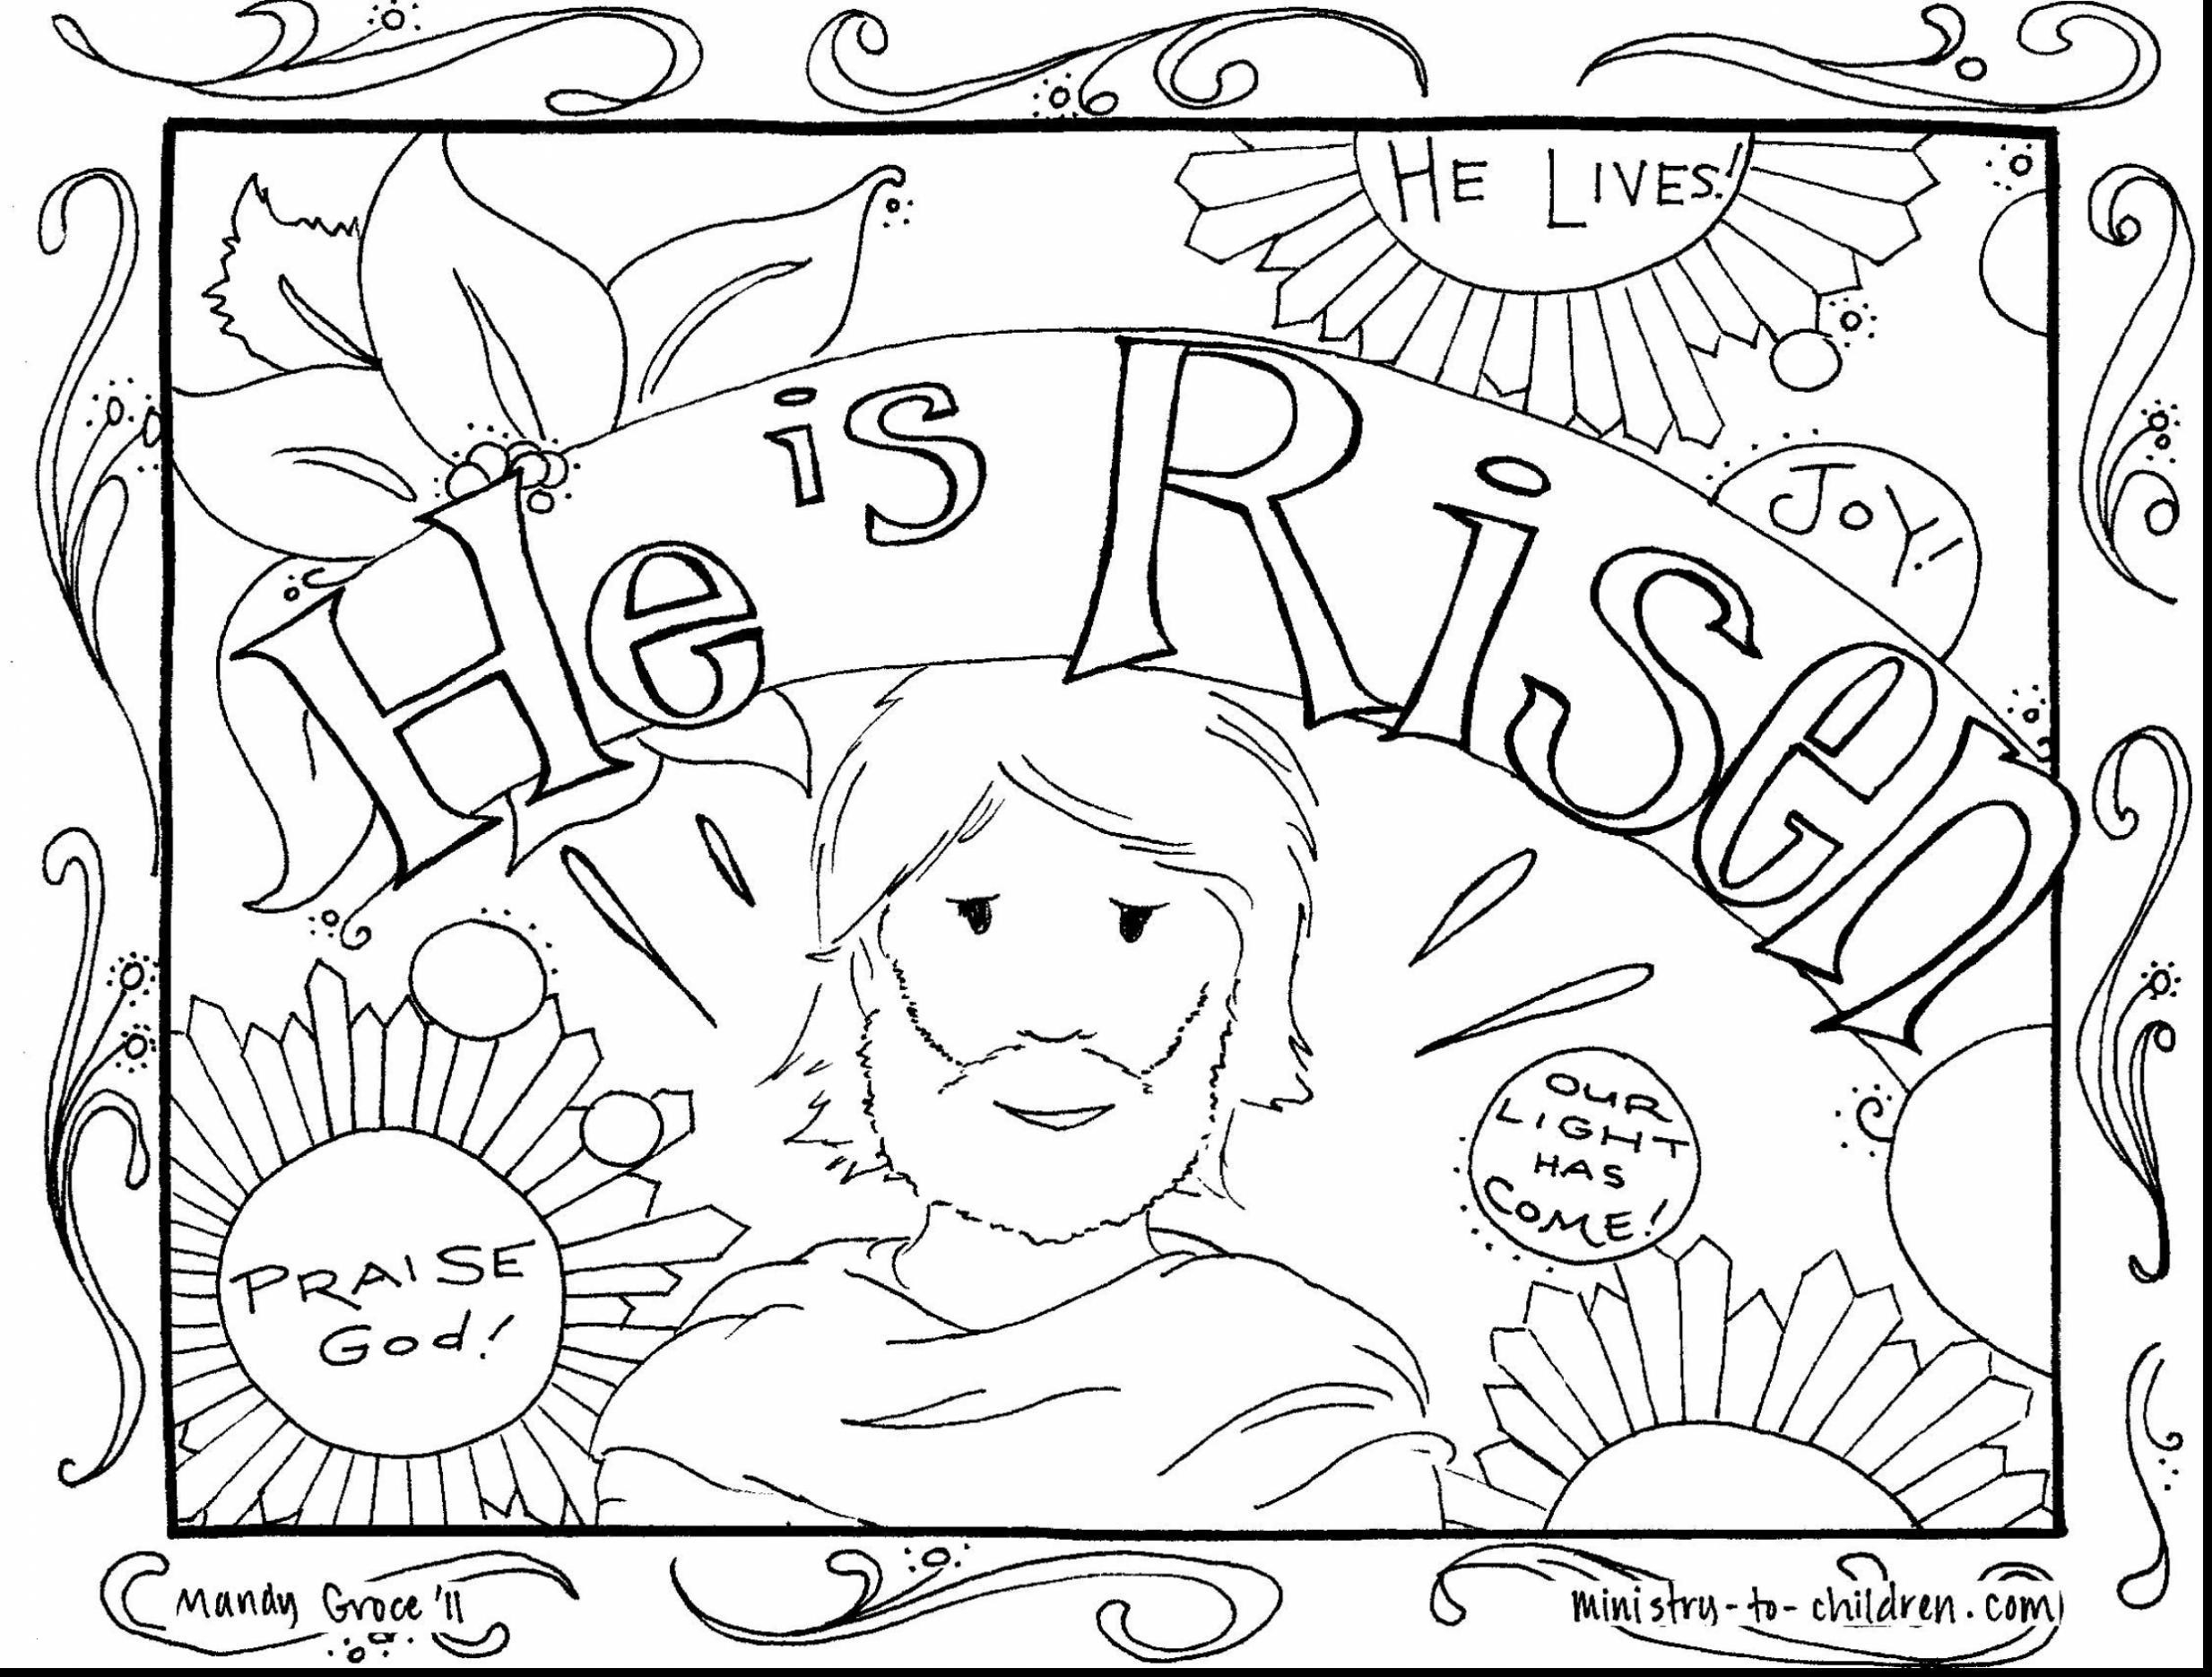 Coloring Pages Jesus ascension  to Print 3k - Save it to your computer